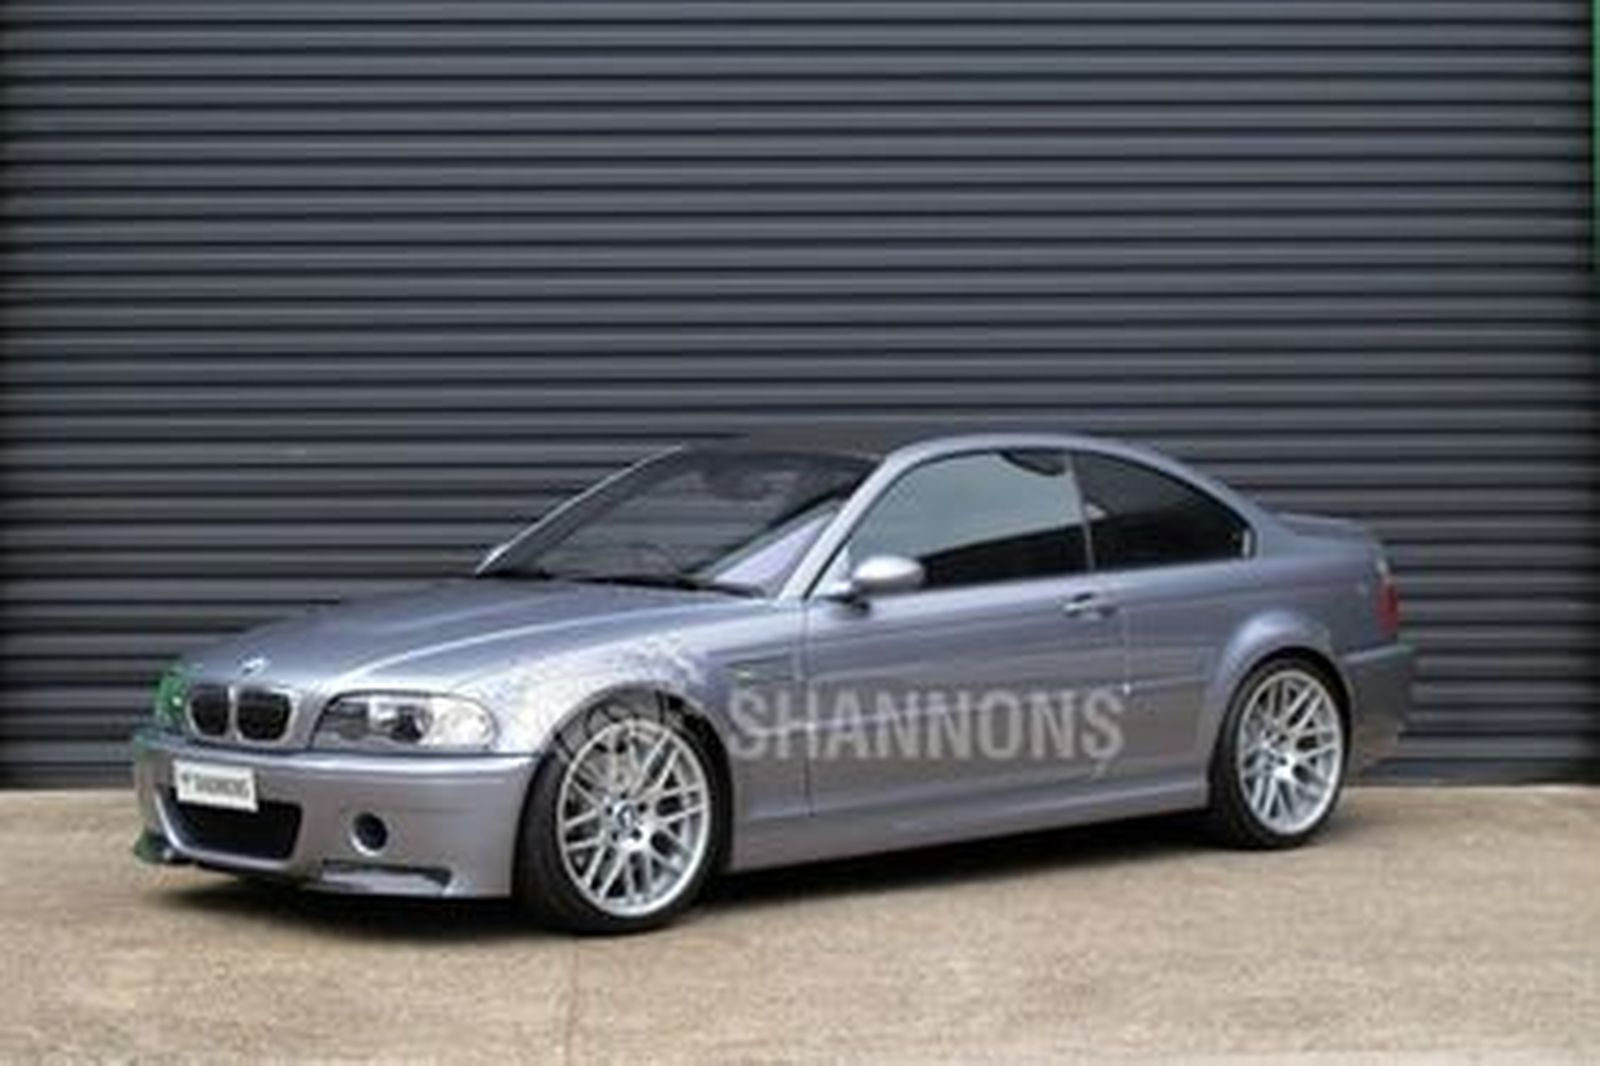 sold bmw m3 e46 csl coupe auctions lot 68 shannons. Black Bedroom Furniture Sets. Home Design Ideas